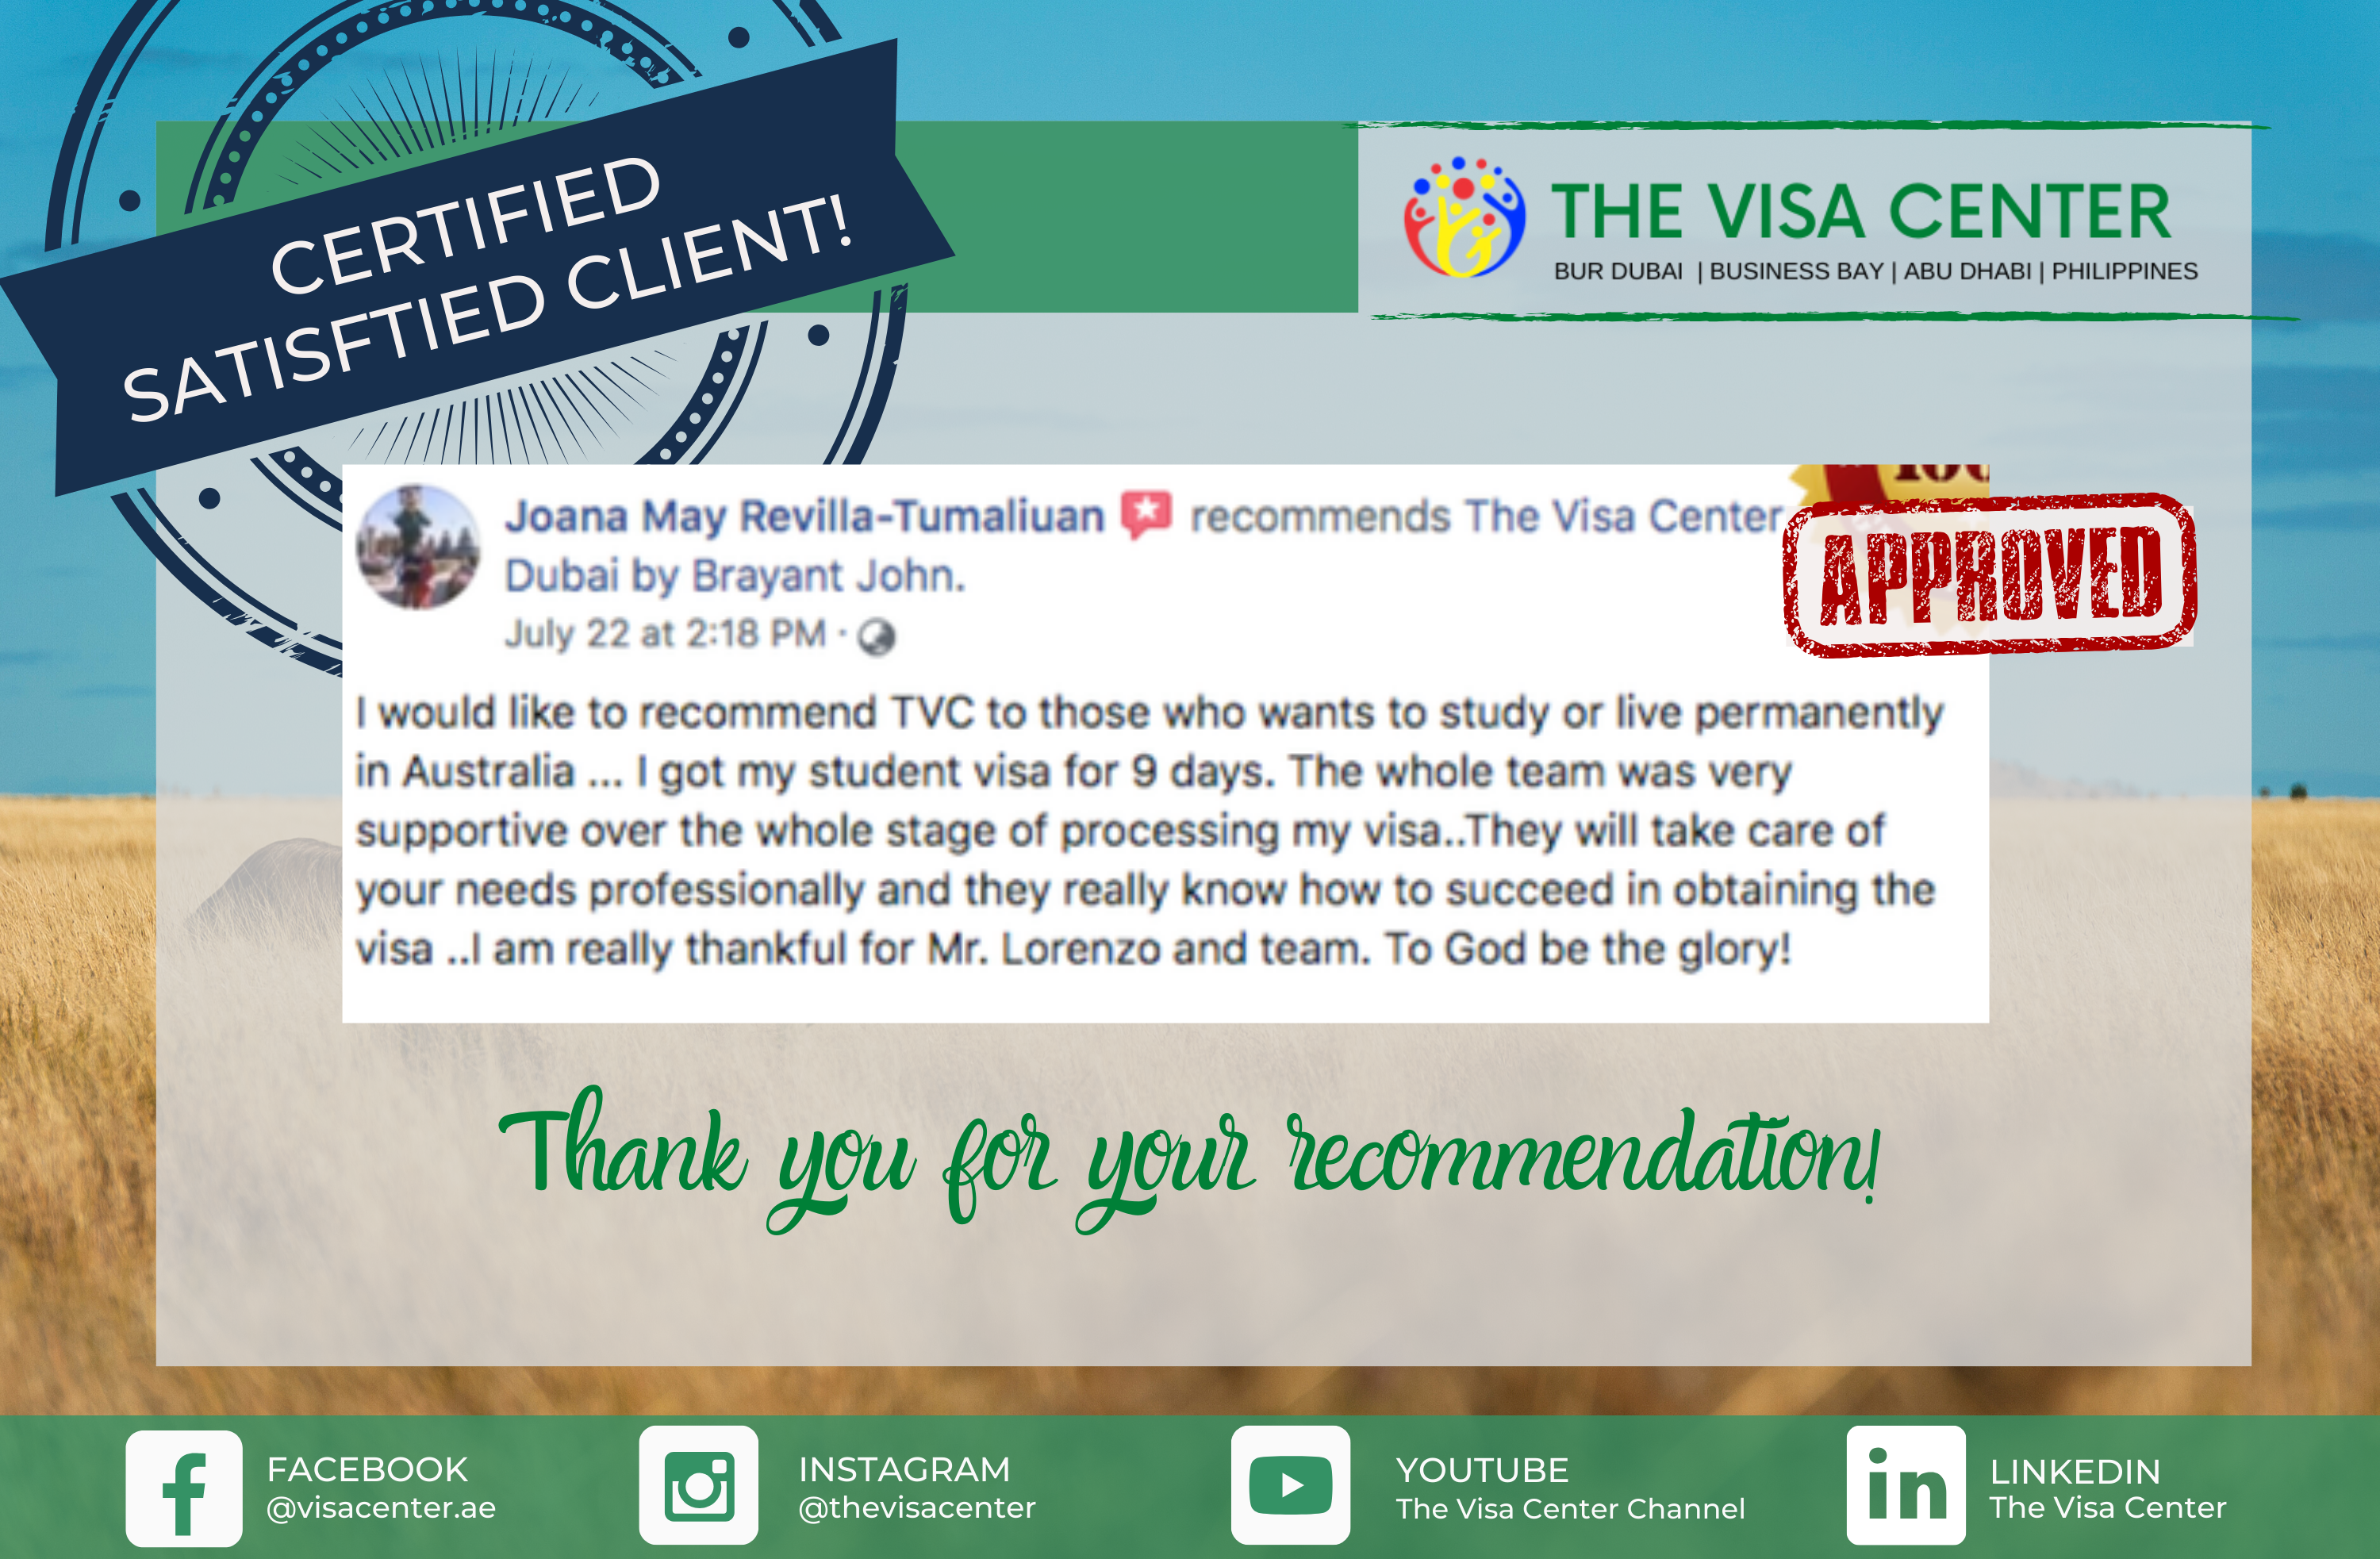 Certified satisfied client!